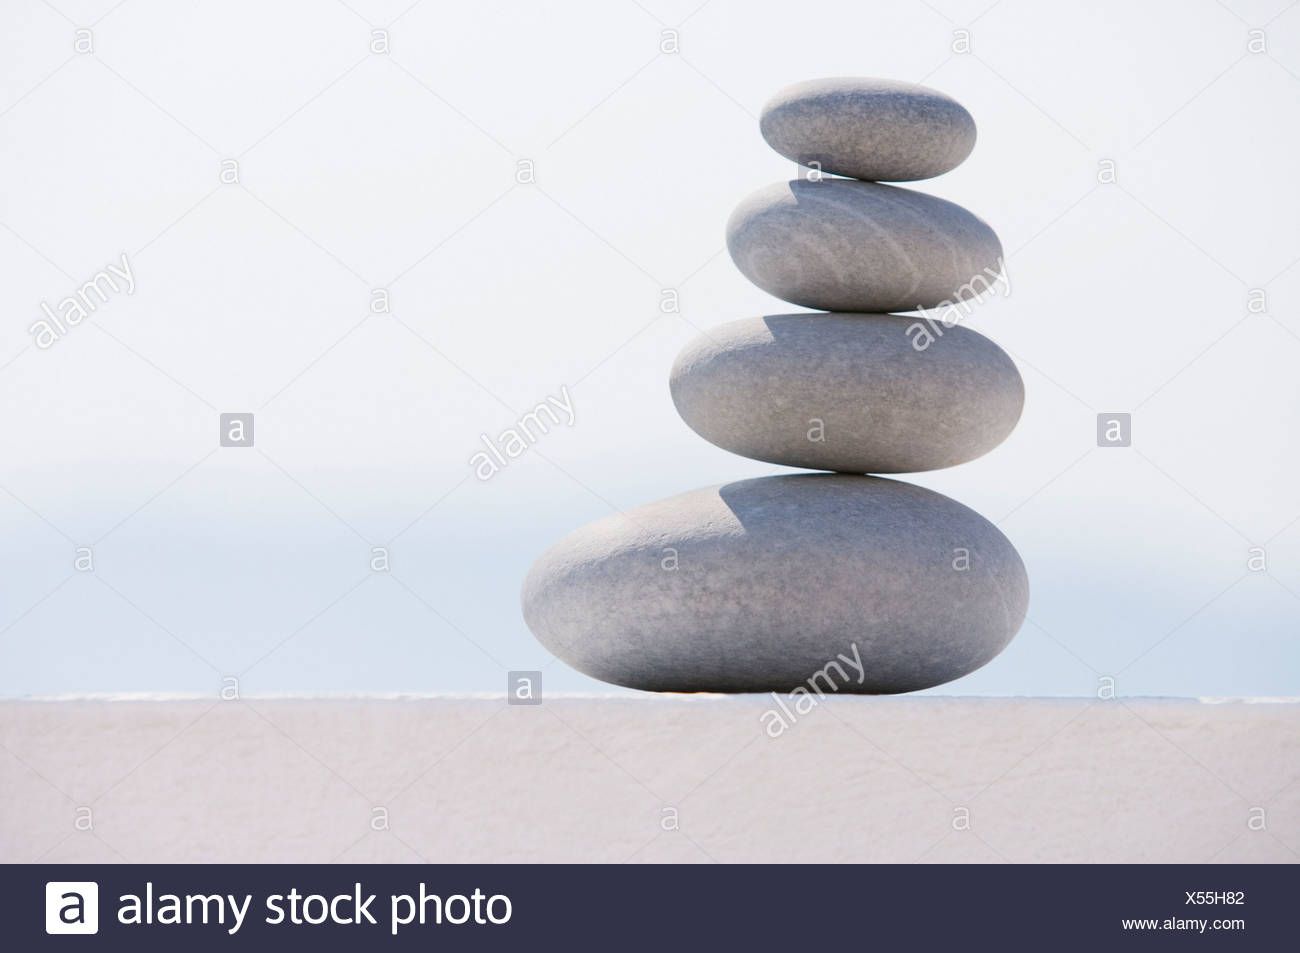 Stack of graduated stones - Stock Image